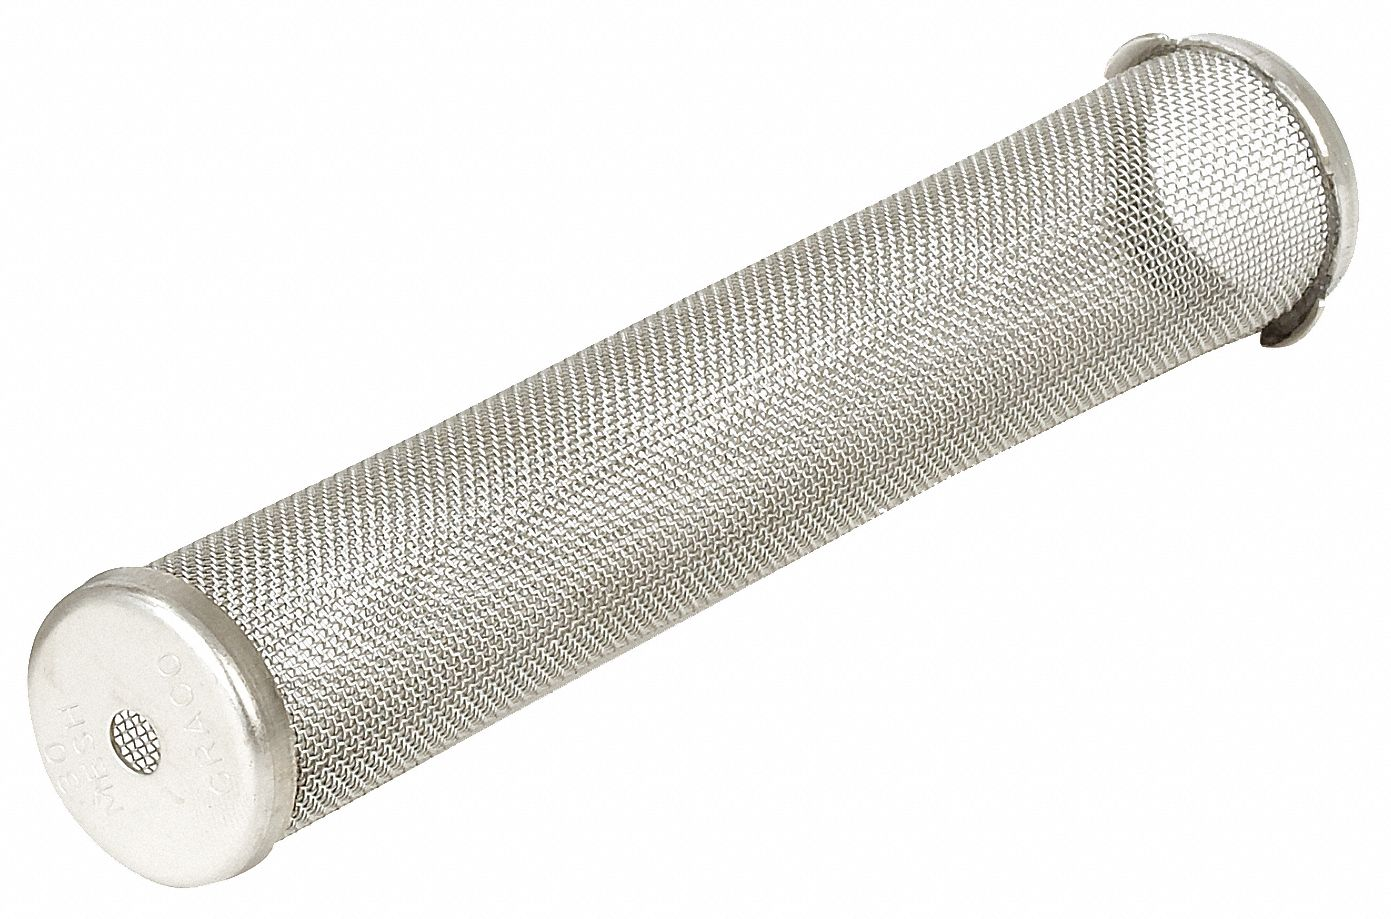 Pump Filter, 60 Mesh, Includes 2 Filters